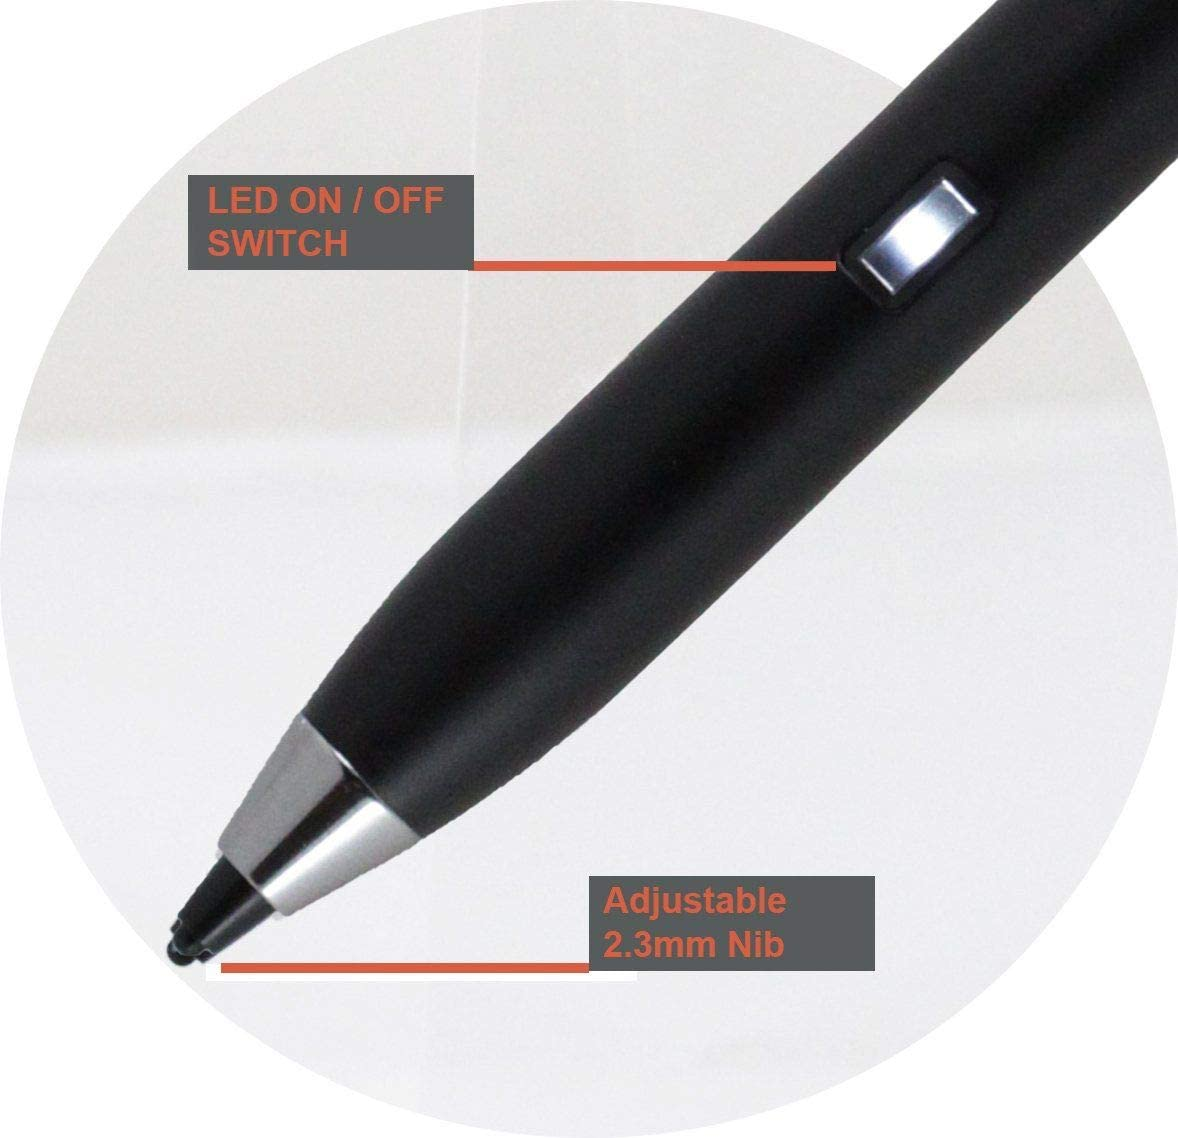 Broonel Black Fine Point Digital Active Stylus Pen Compatible with The Apple MacBook Air MD711LL//B 11.6-Inch Laptop Apple MacBook Air MJVM2LL//A 11.6-Inch Laptop